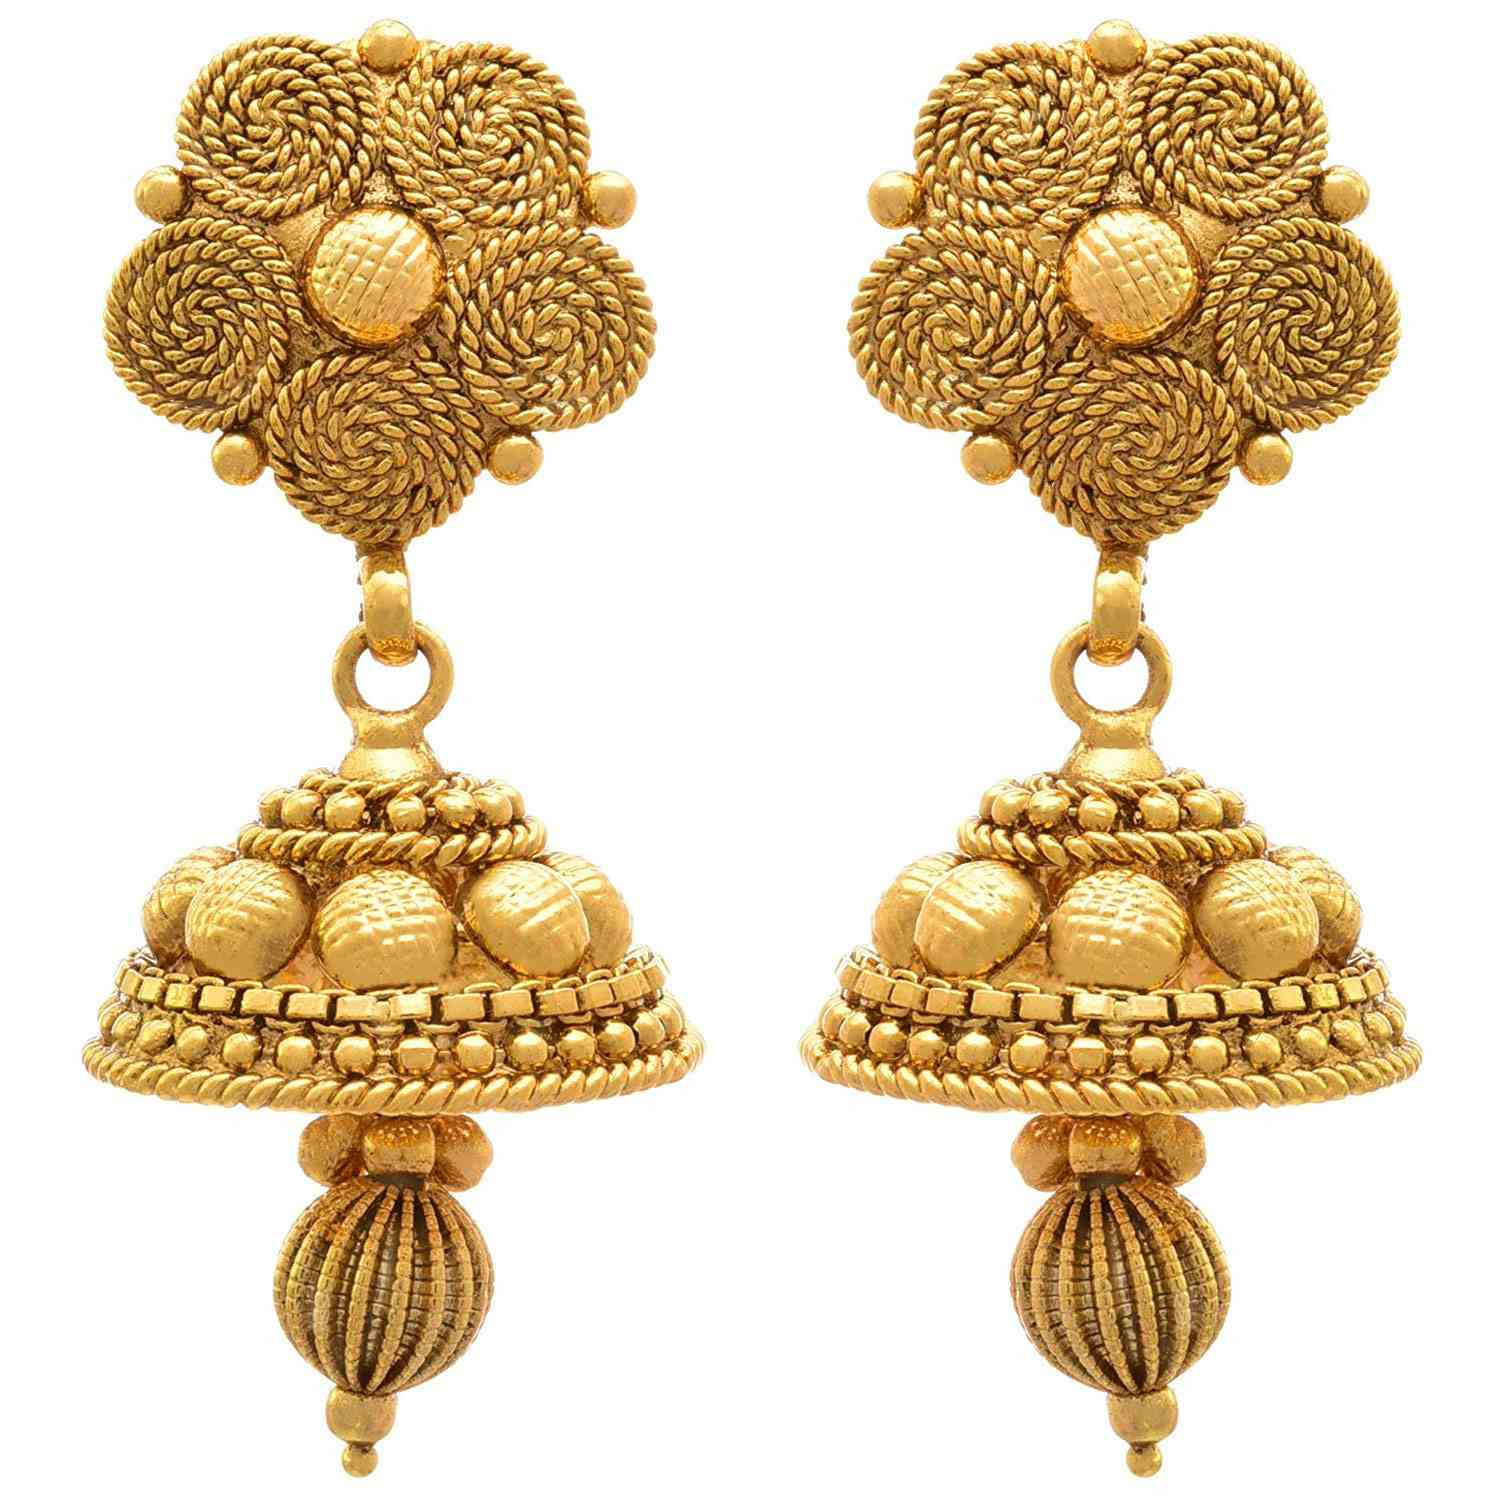 One Gram Gold Plated Spiral Necklace Set / Jewellery Set With Jhumka Earring For Women